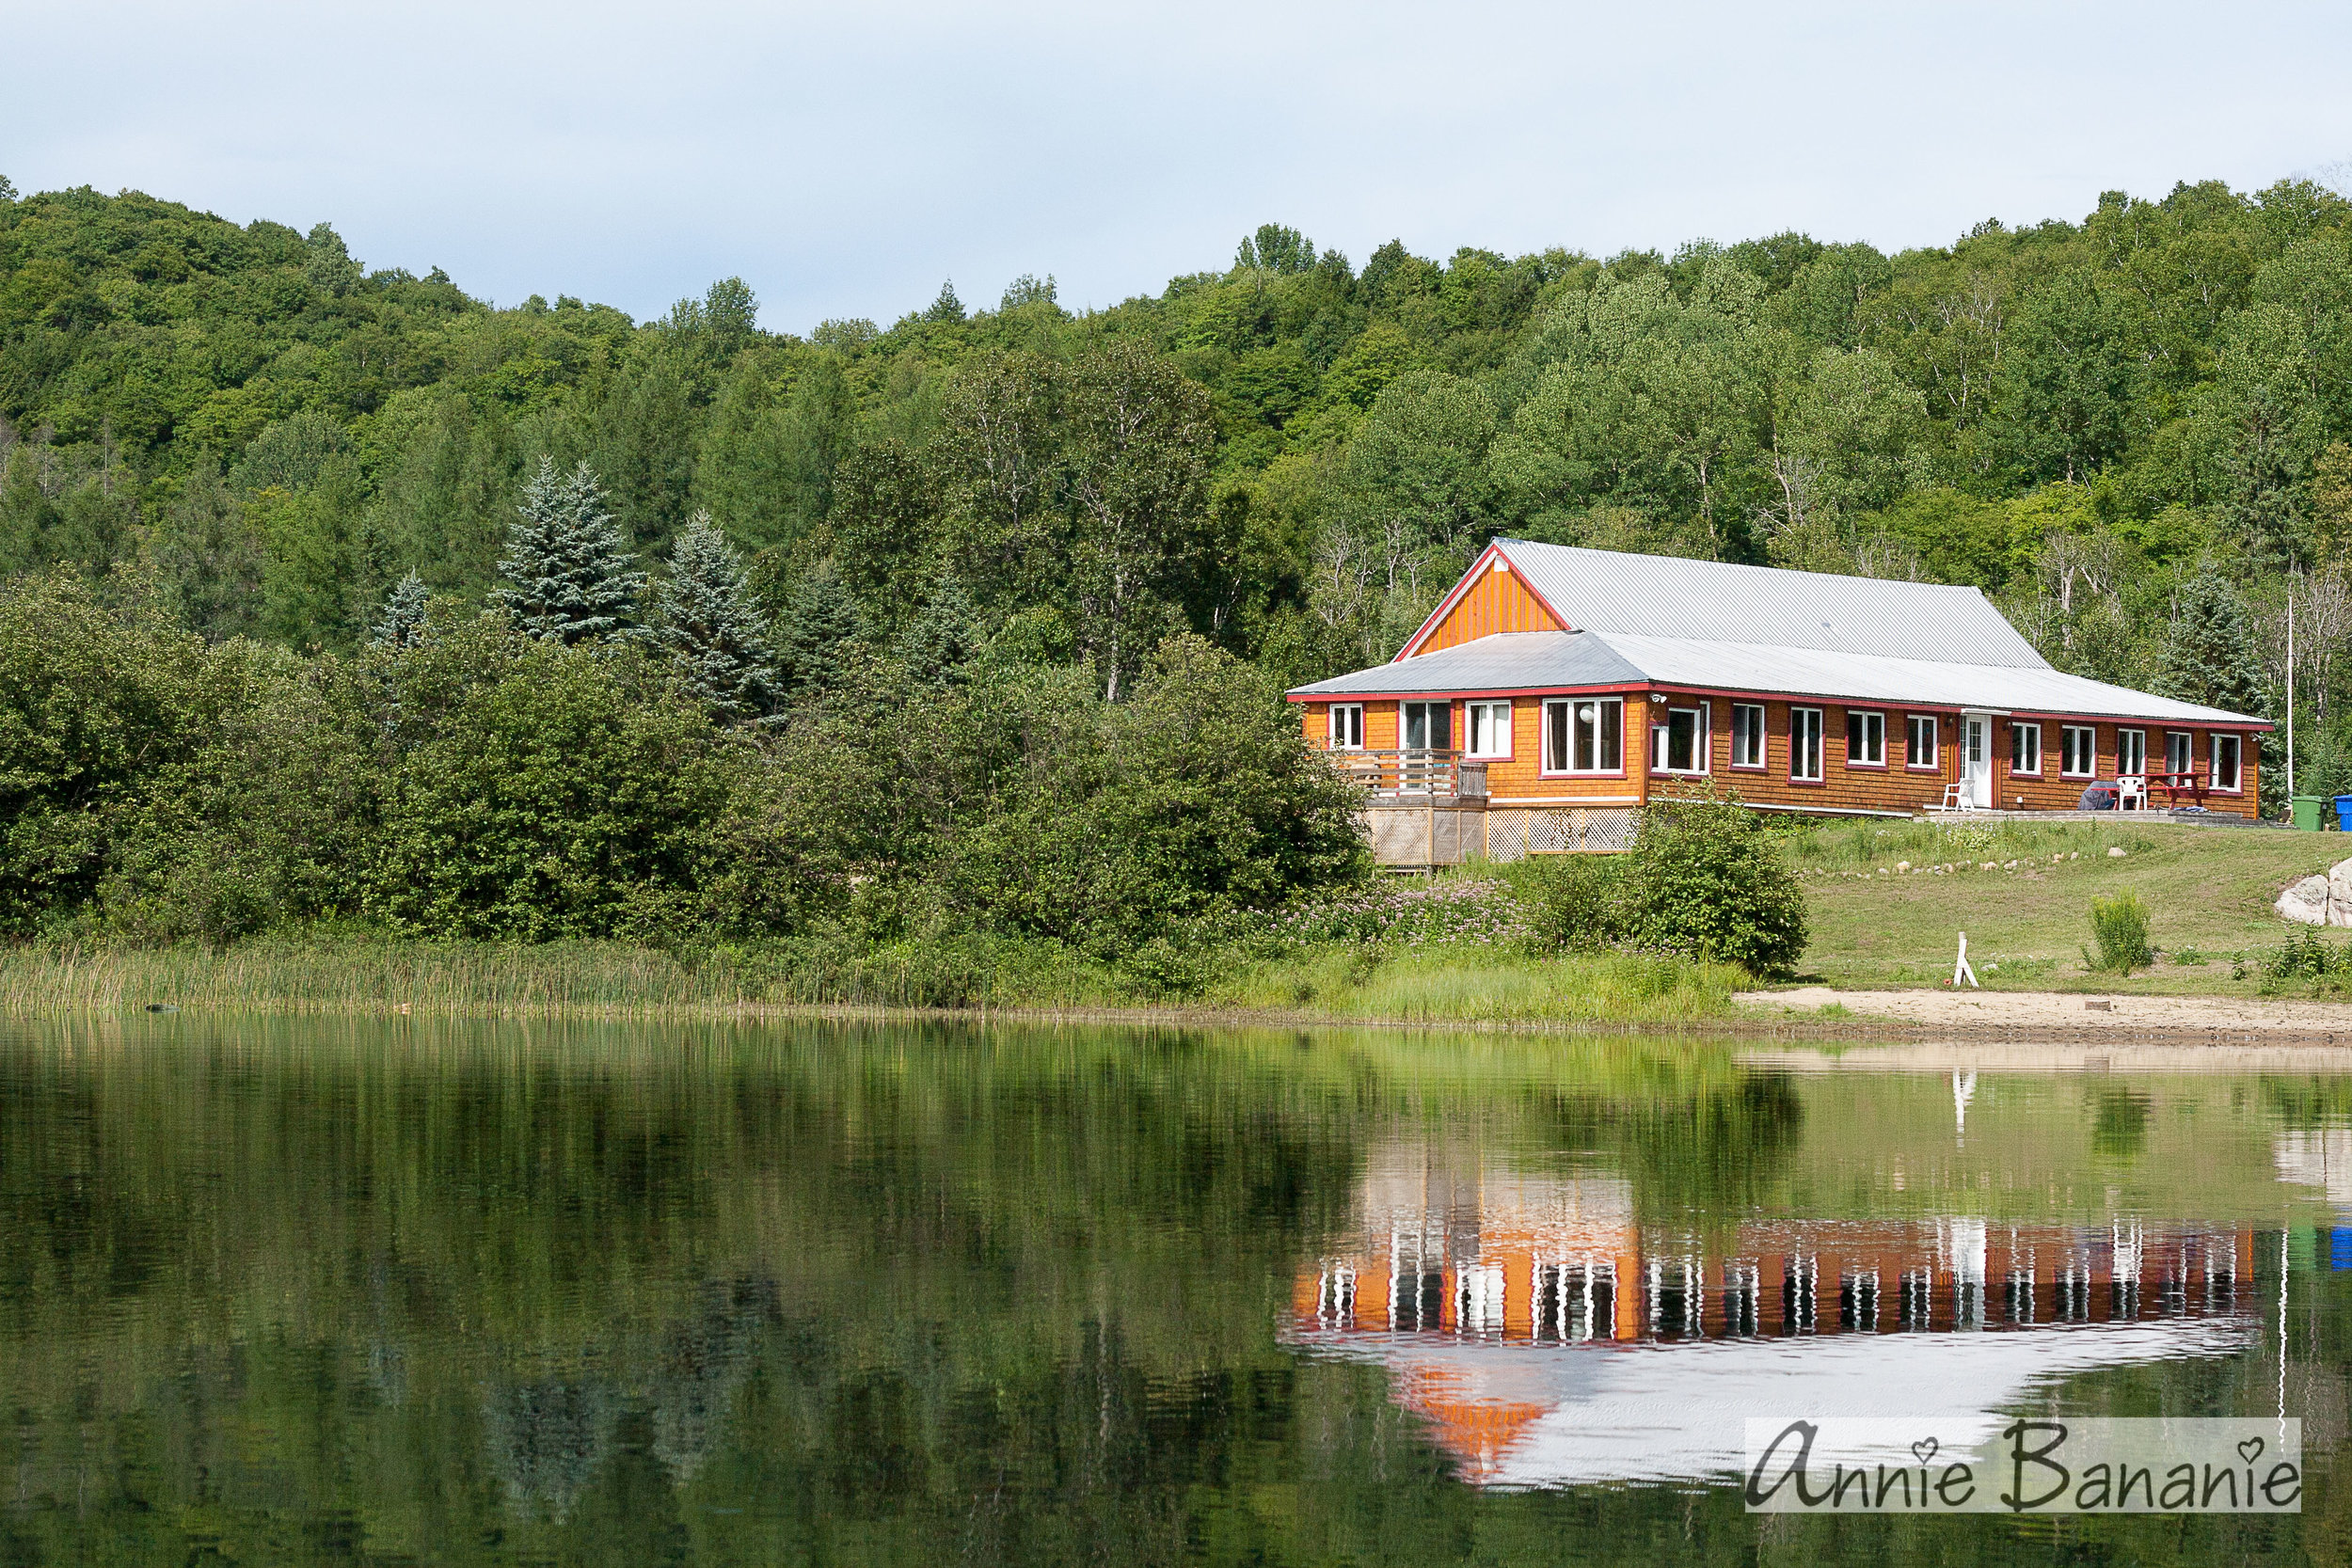 My Studio in the Woods - Come and experience the calm of the woods and the beauty of the lake.